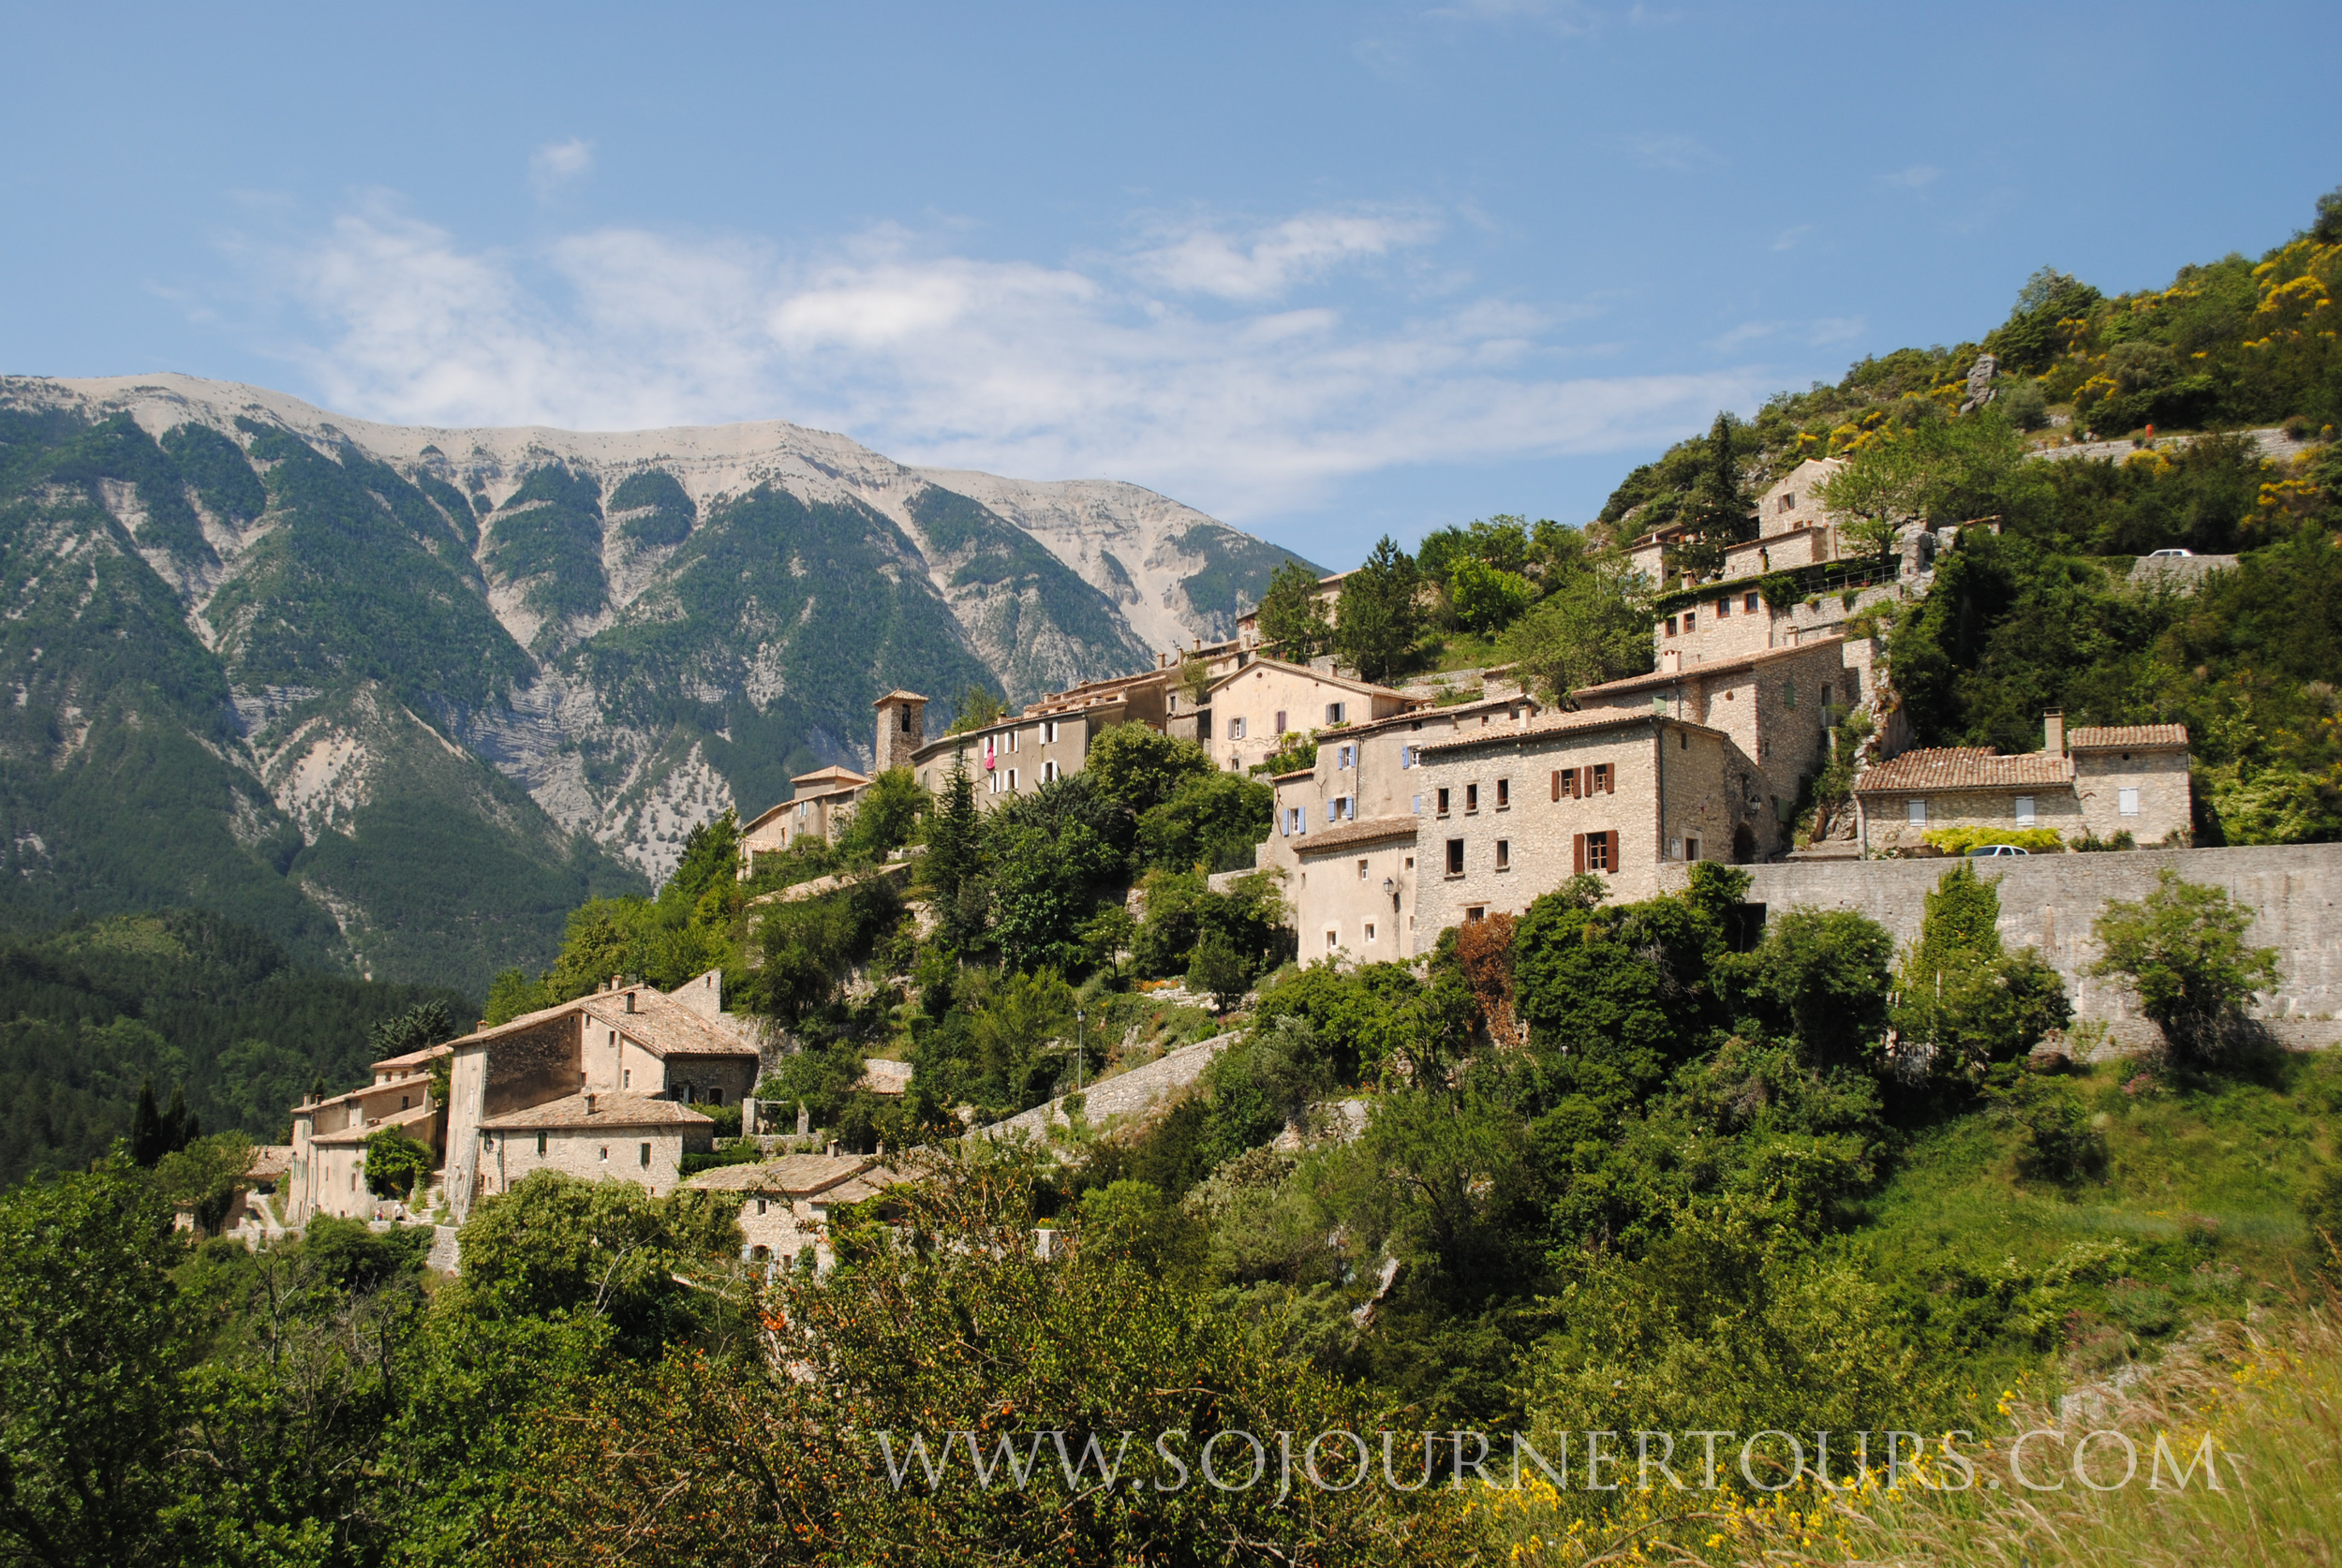 The Drome, France: Sojourner Tours